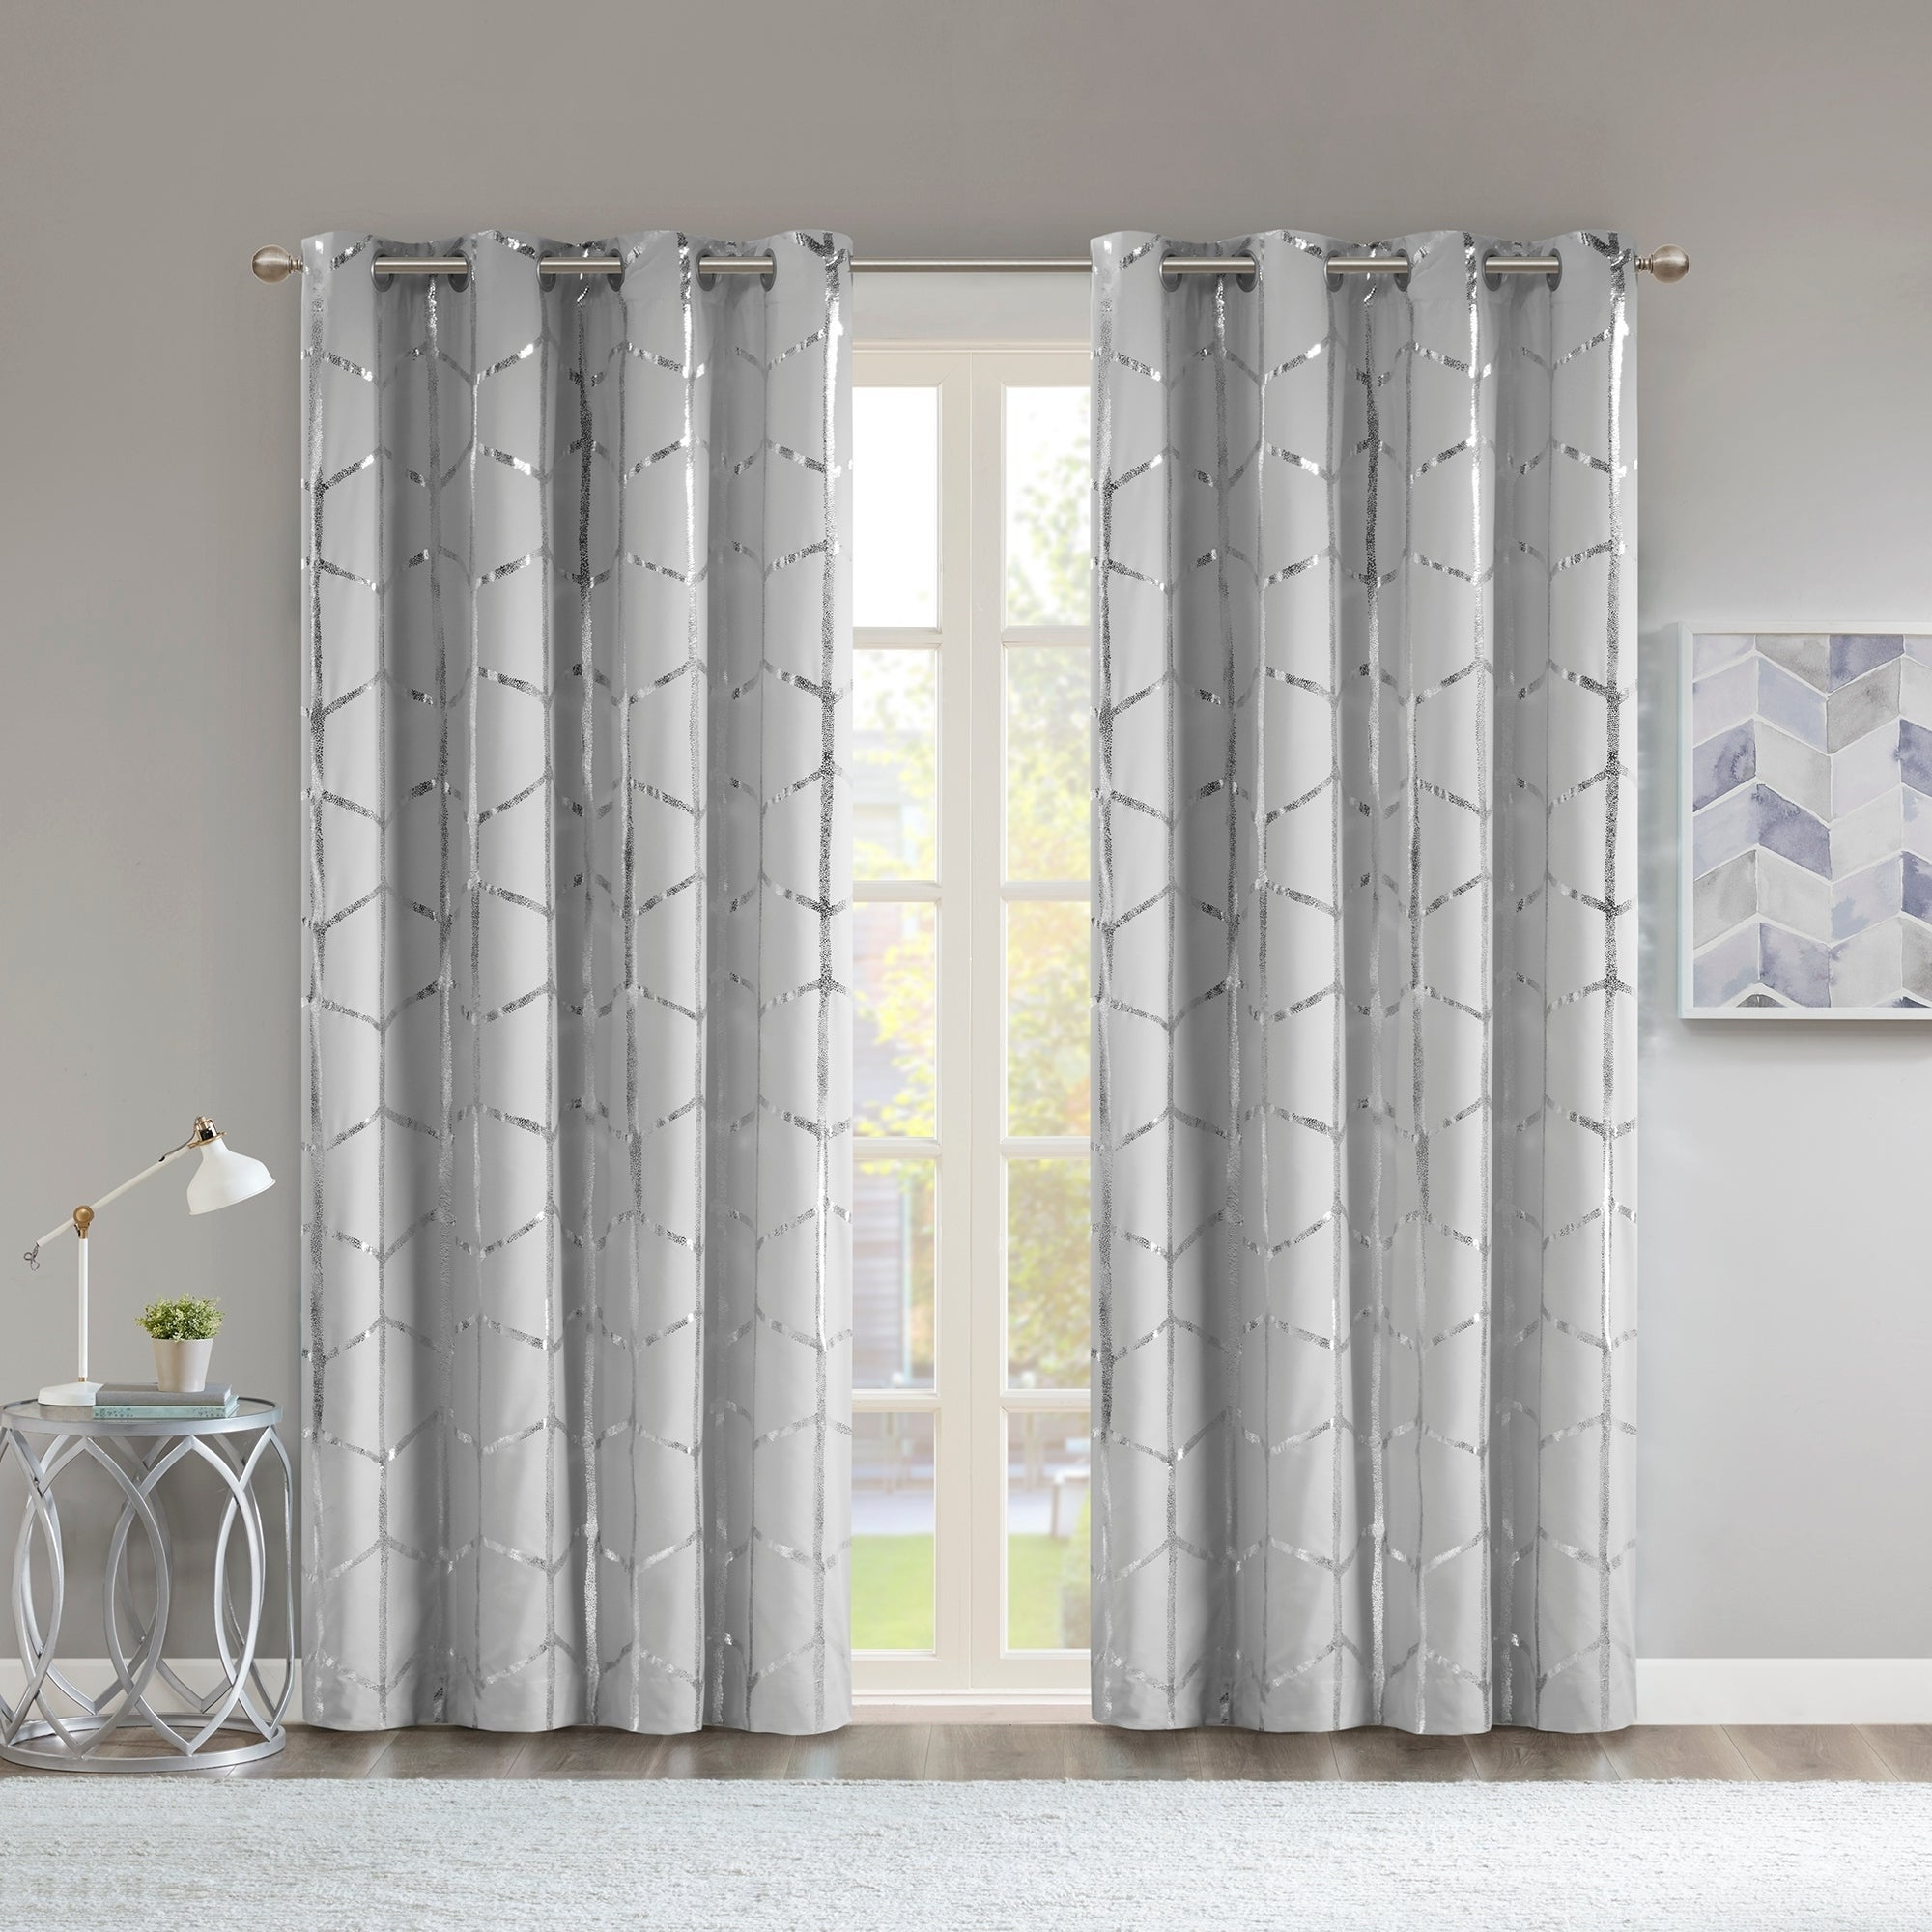 Intelligent Design Khloe Total Blackout Metallic Print Grommet Top Curtain Panel In 2020 Total Blackout Metallic Print Grommet Top Curtain Panels (View 2 of 20)